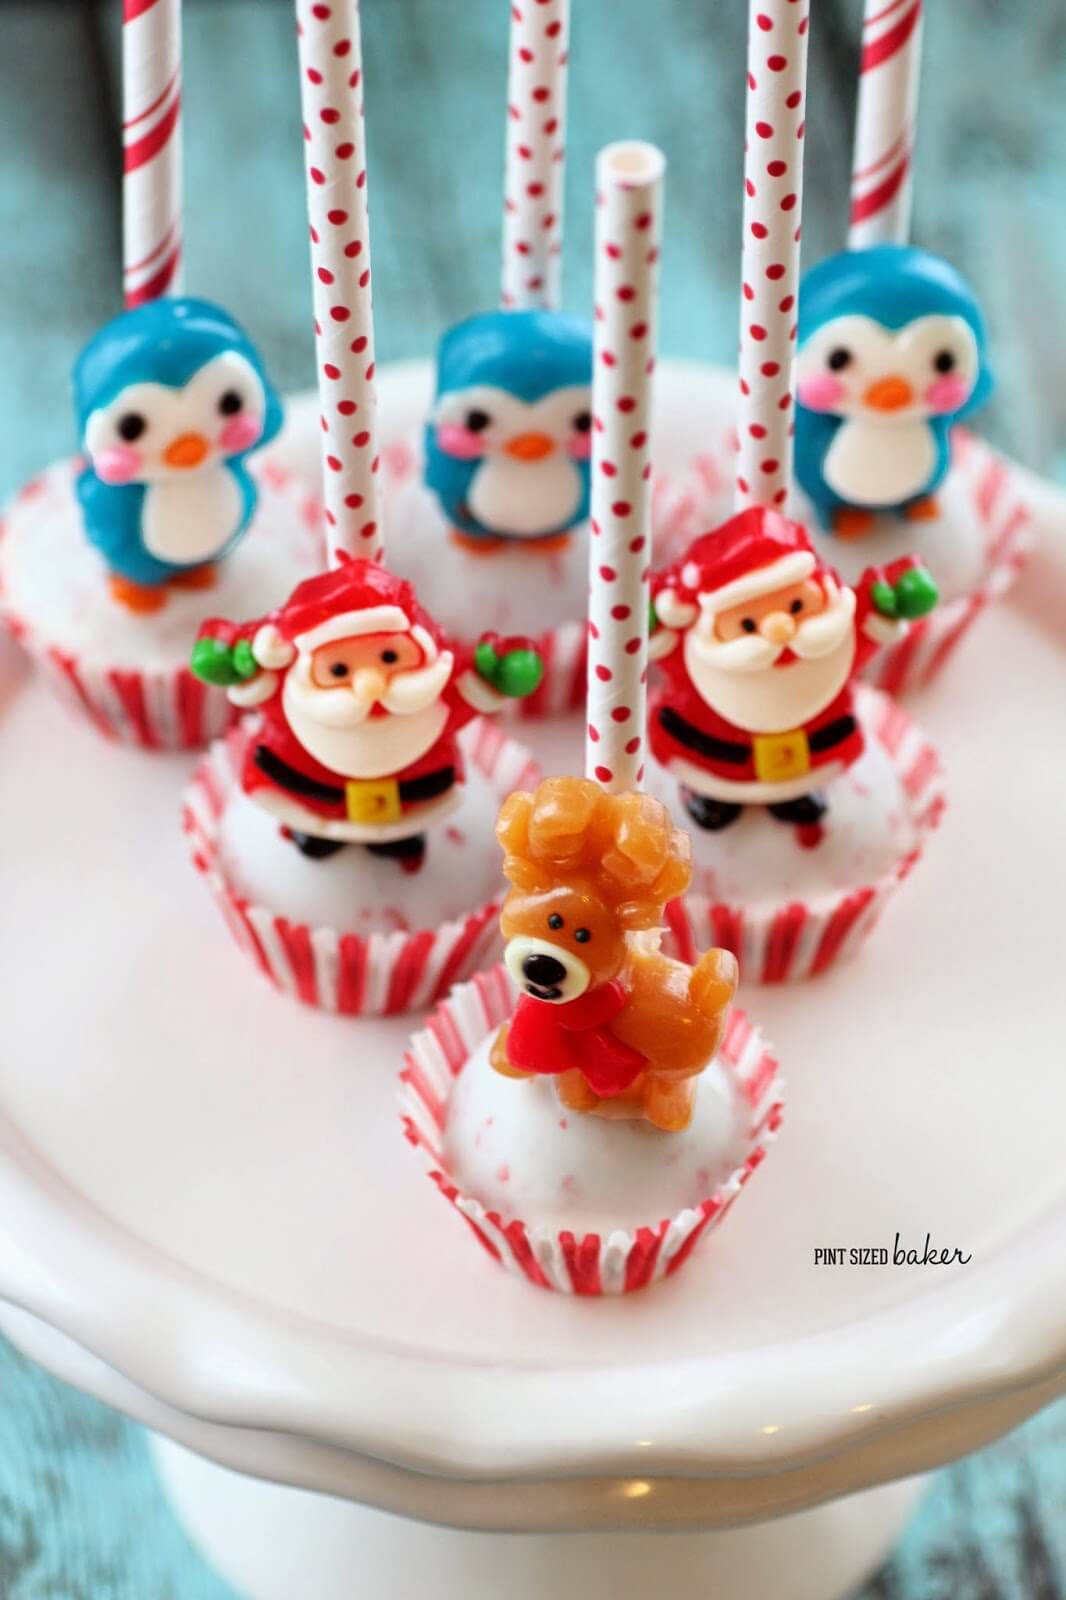 These Easy Christmas Cake Pops are so simple to make and look so adorable! Pick up the gummy candies at the store and make them for your holiday party.